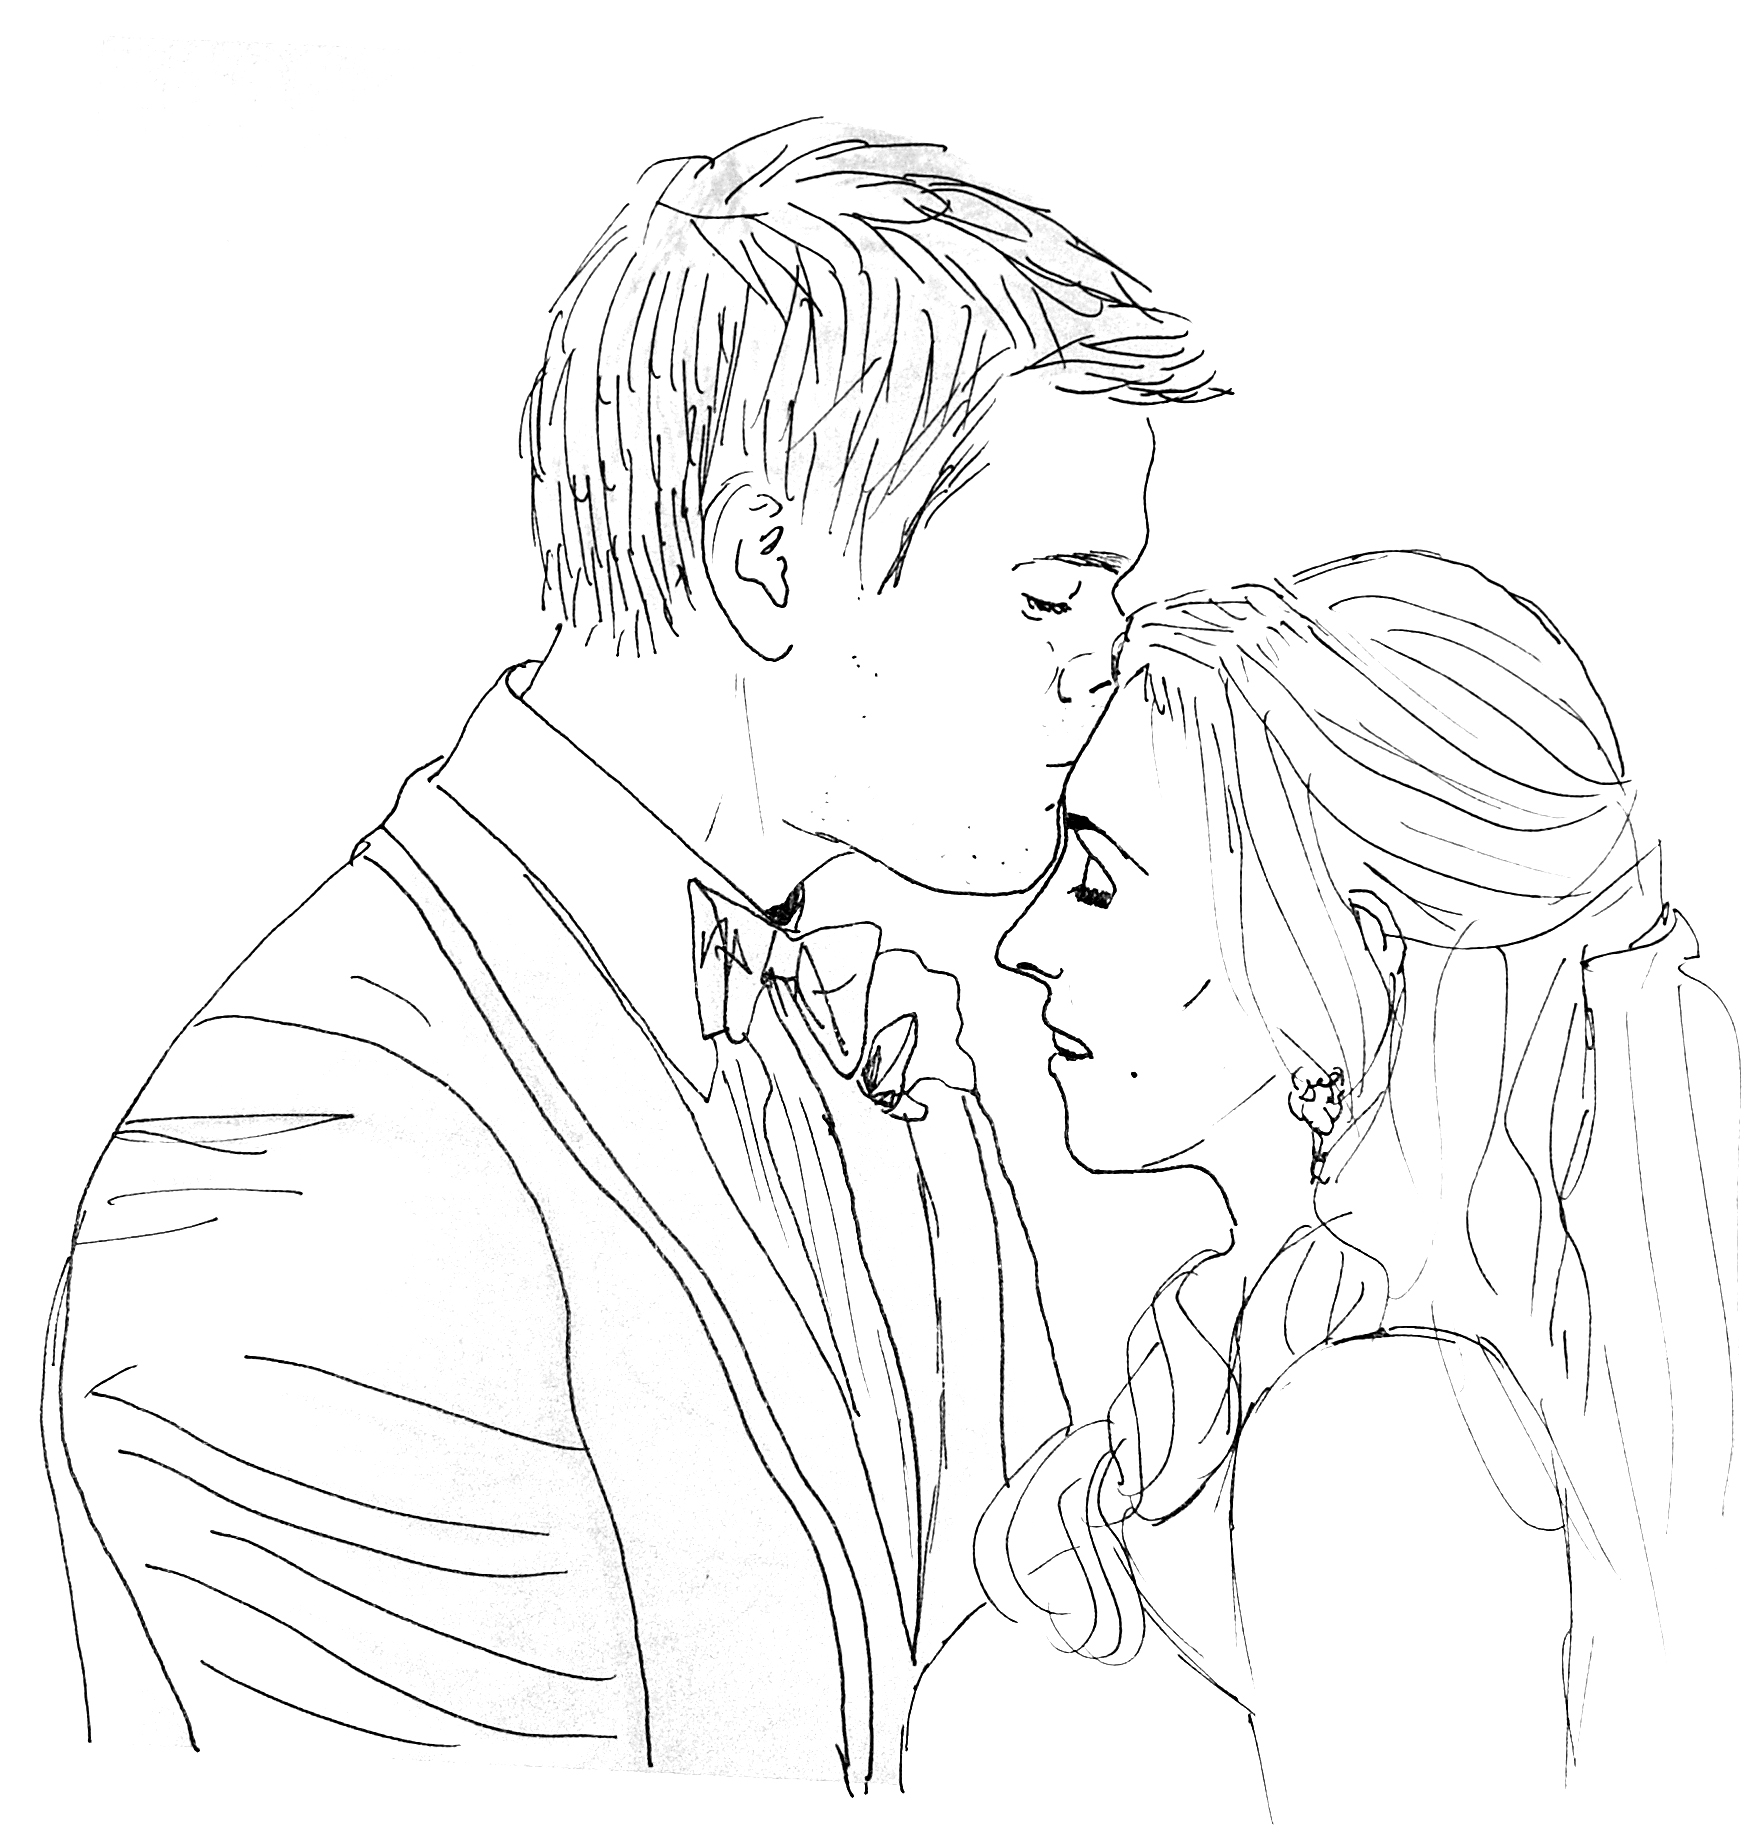 how to draw a wedding couple wedding couple drawing at getdrawings free download how to couple a draw wedding